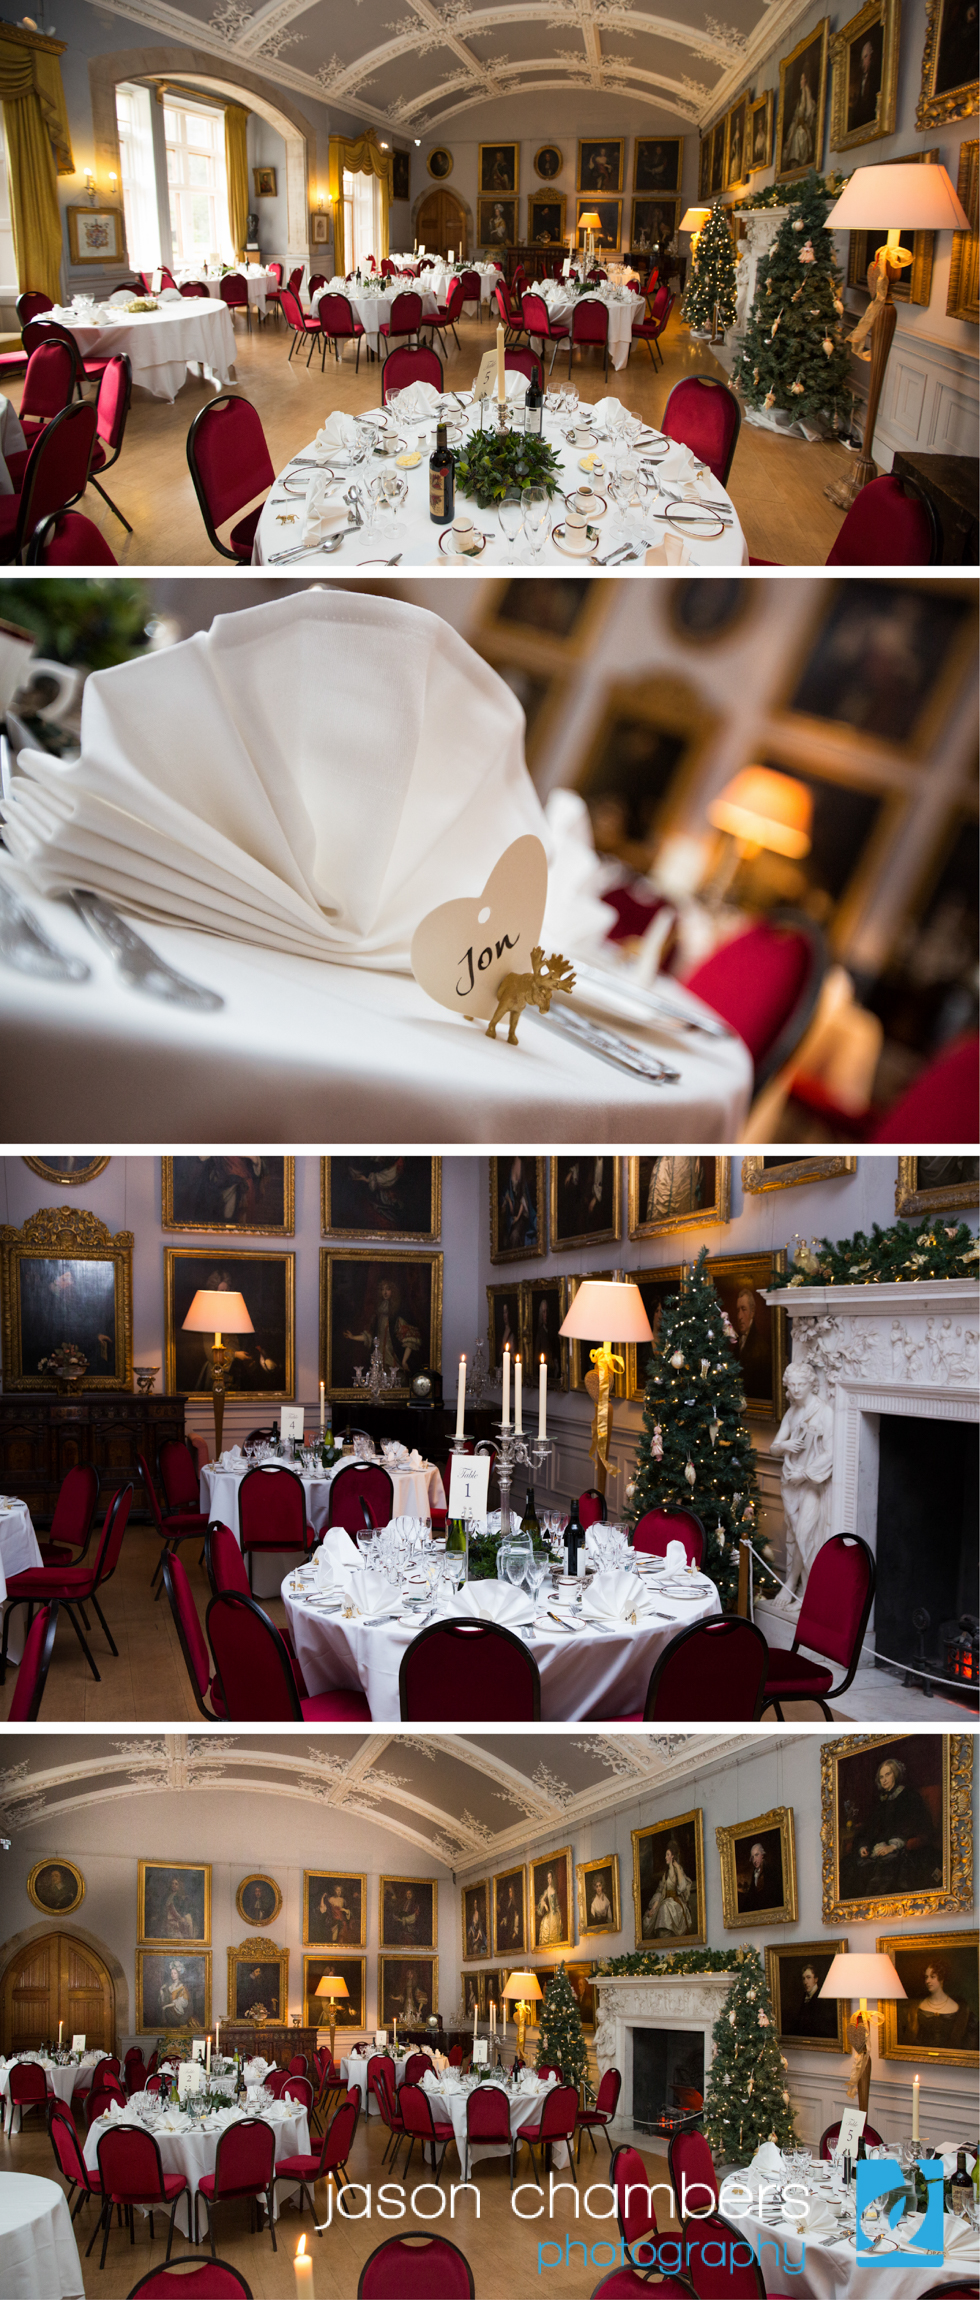 The Muncaster Dining Room